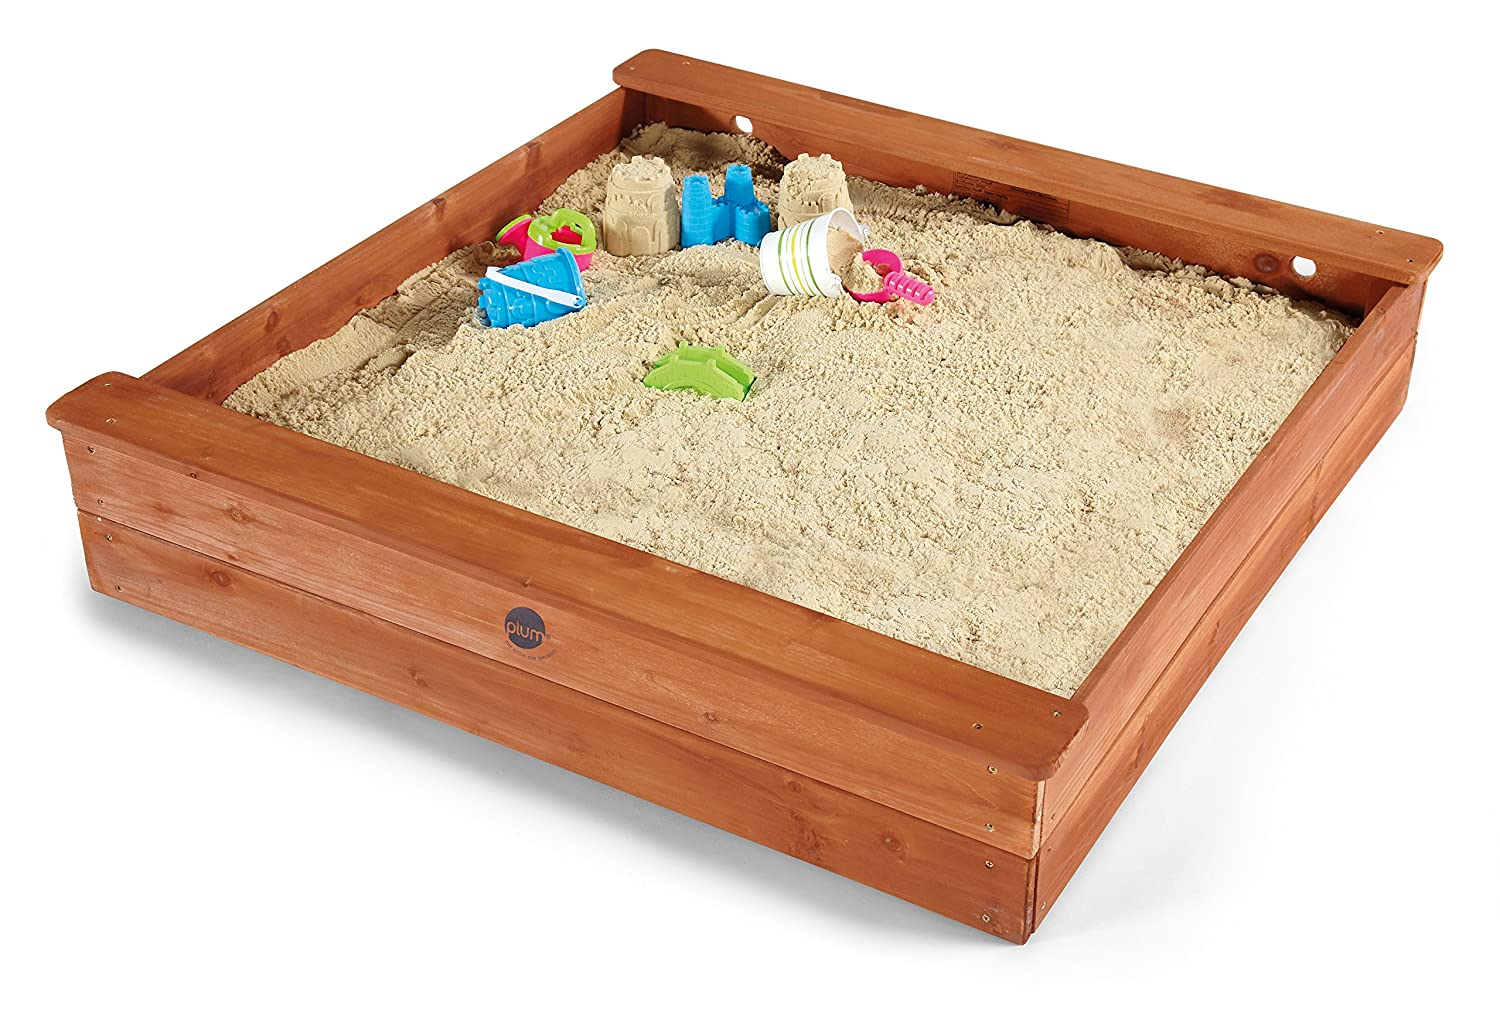 Plum Products 25055 - Square Wooden Sand Pit